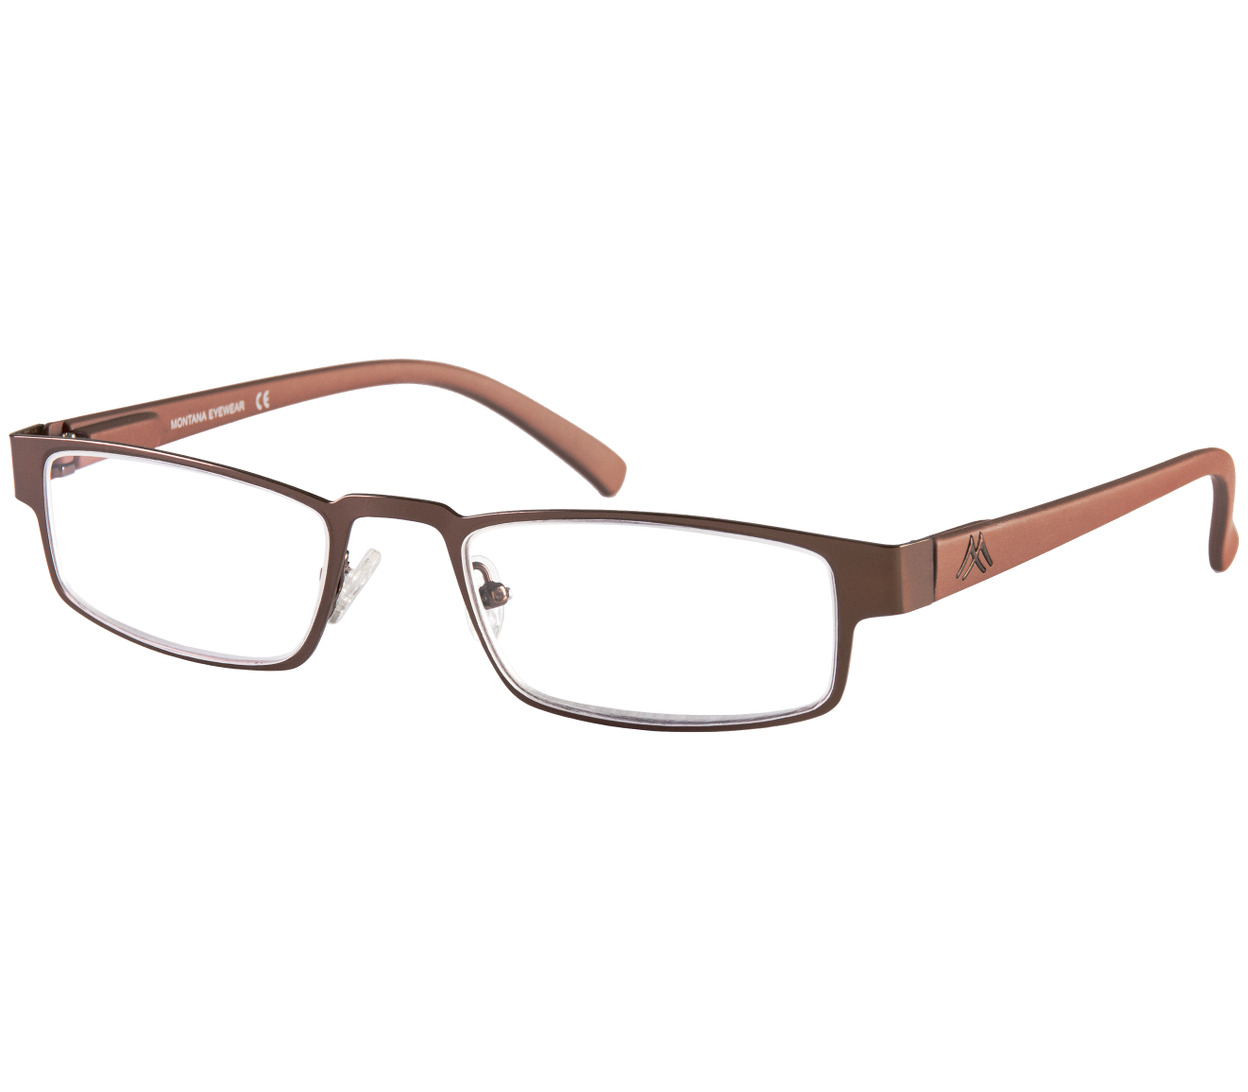 Main Image (Angle) - Melbourn (Brown) Classic Reading Glasses